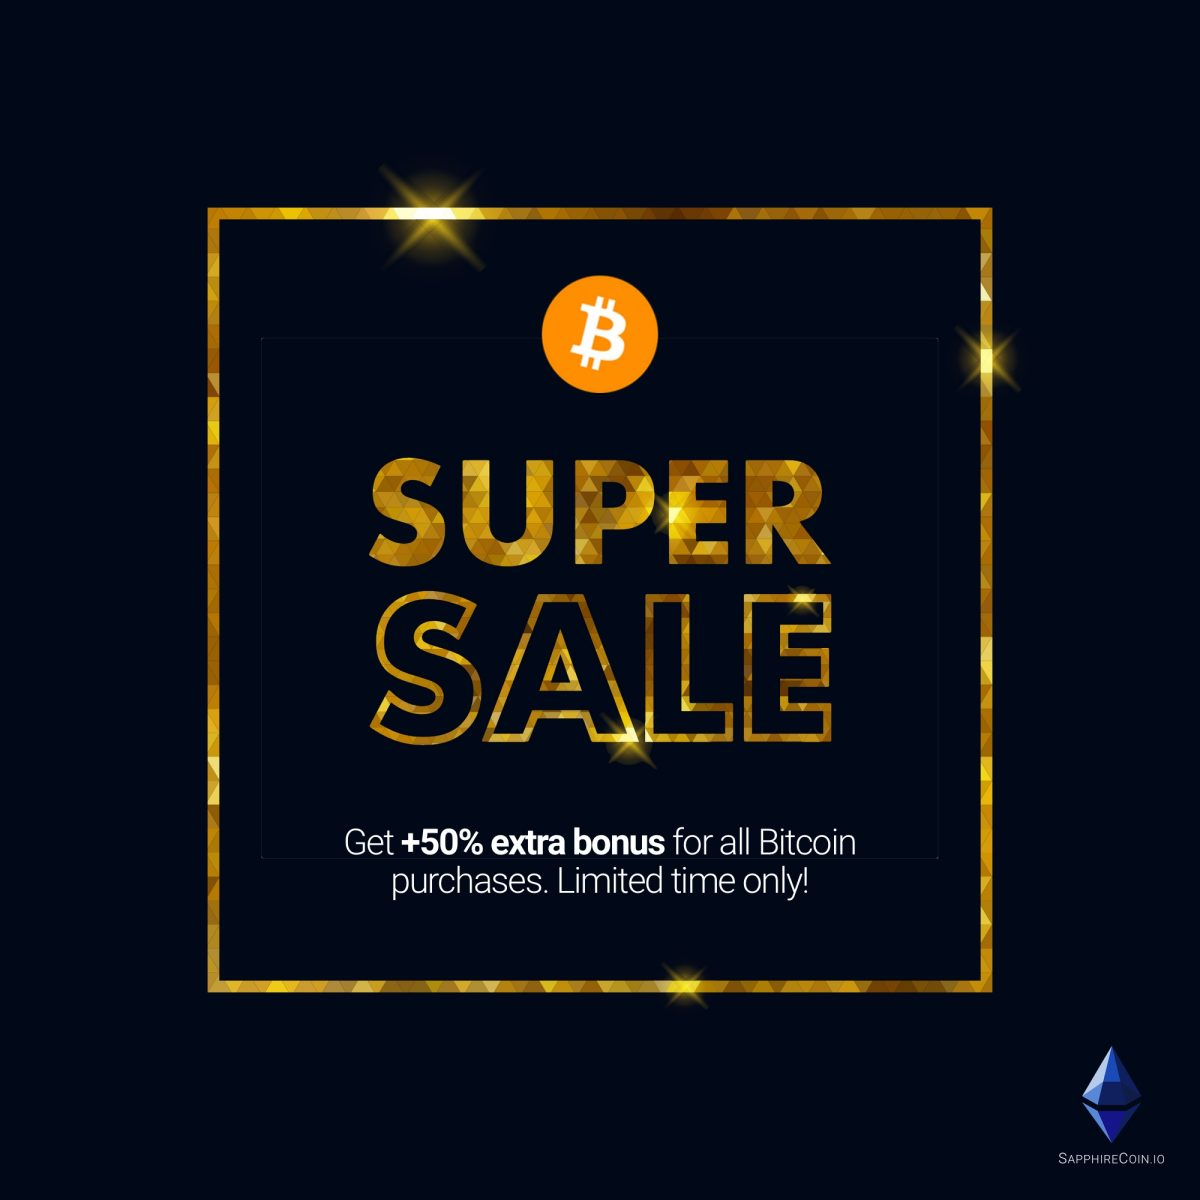 Get +50% for Bitcoin purchases